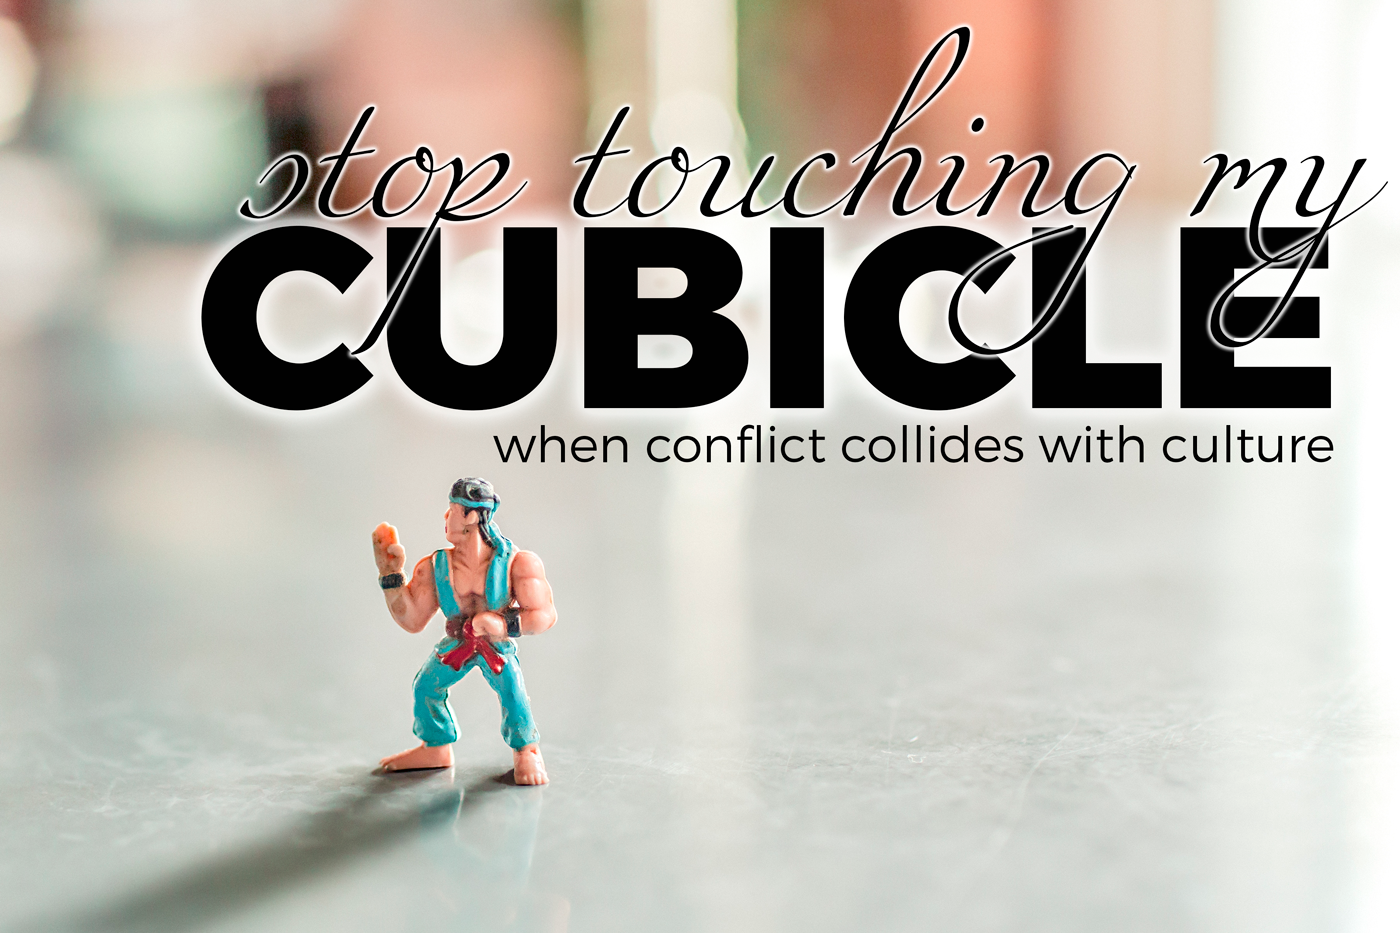 Stop Touching My Cubicle